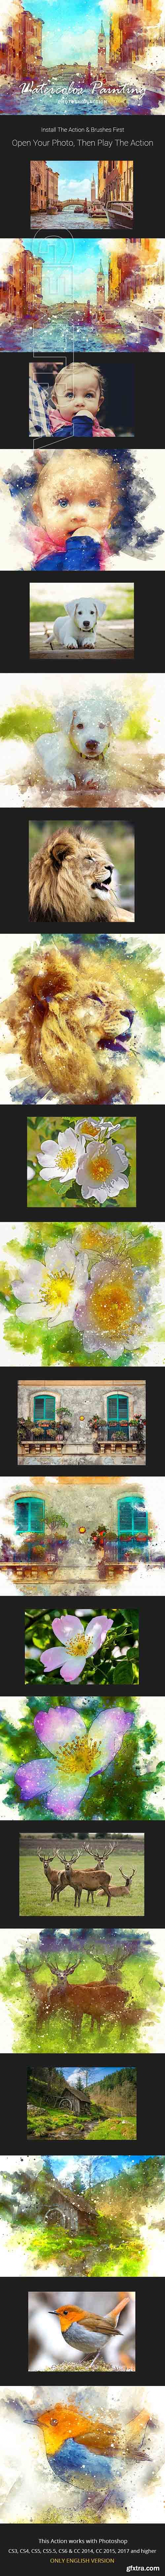 GraphicRiver - Full Watercolor Painting Photoshop Action 21110517